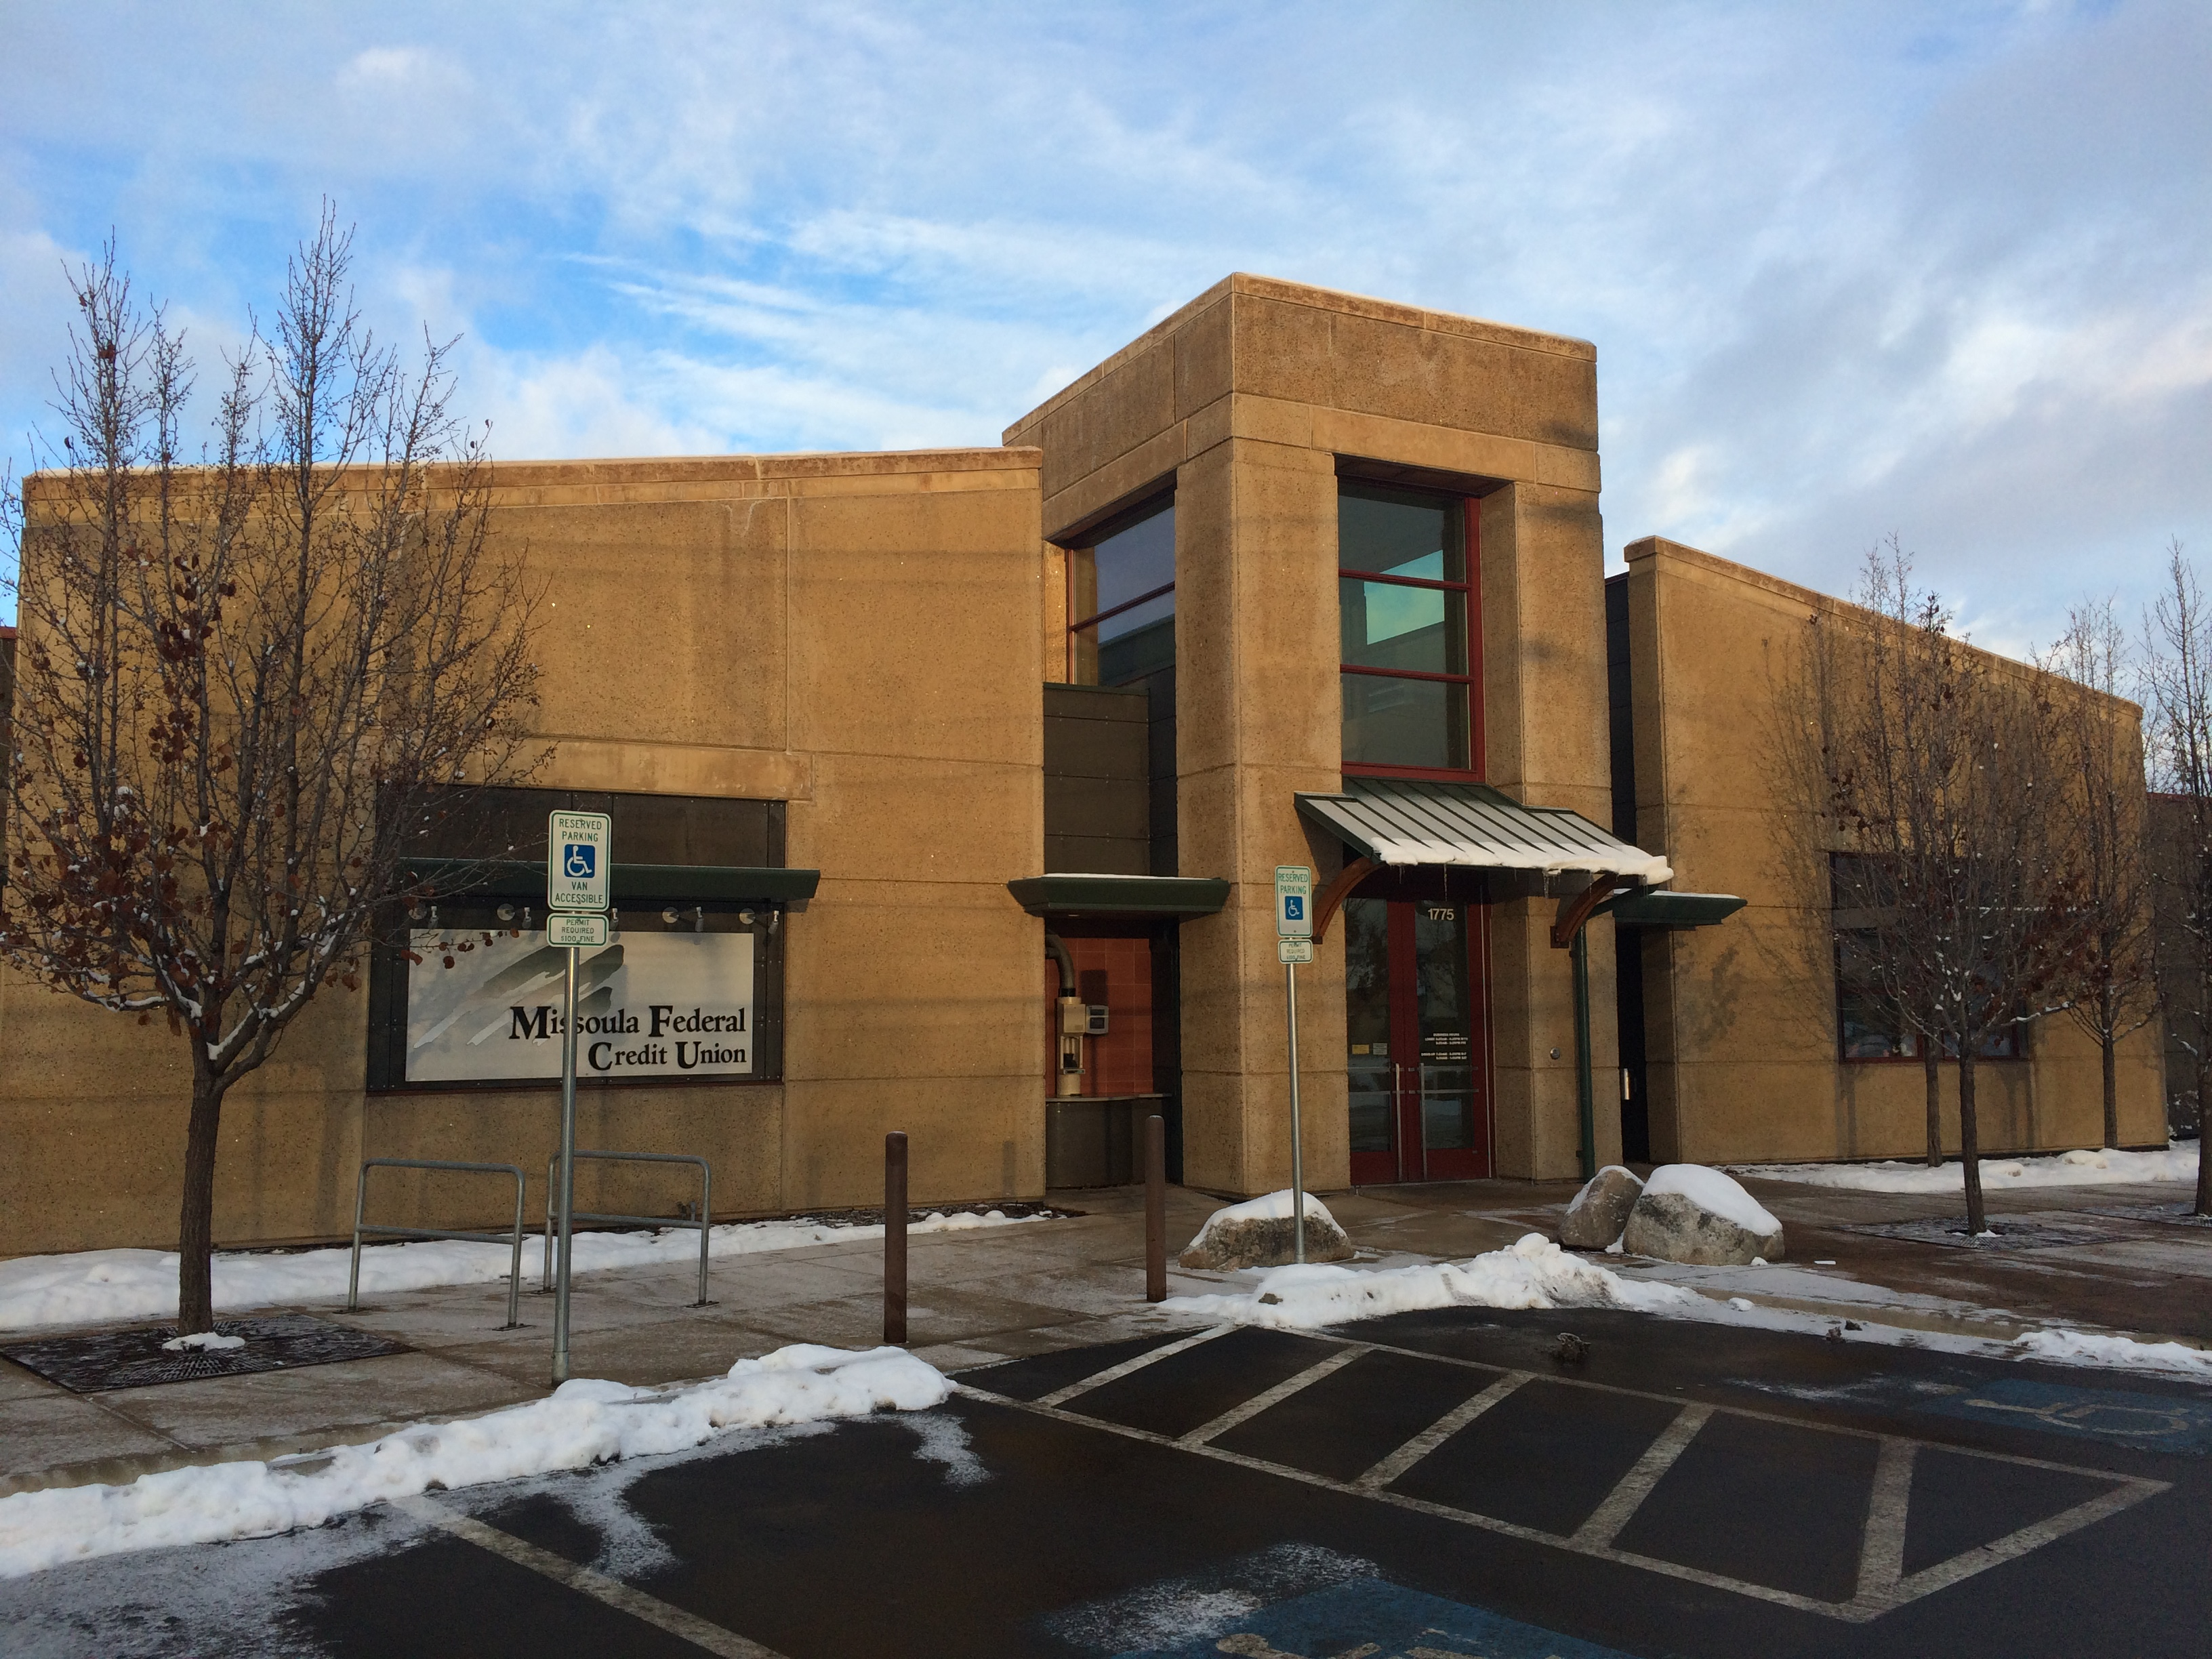 Missoula Federal Credit Union